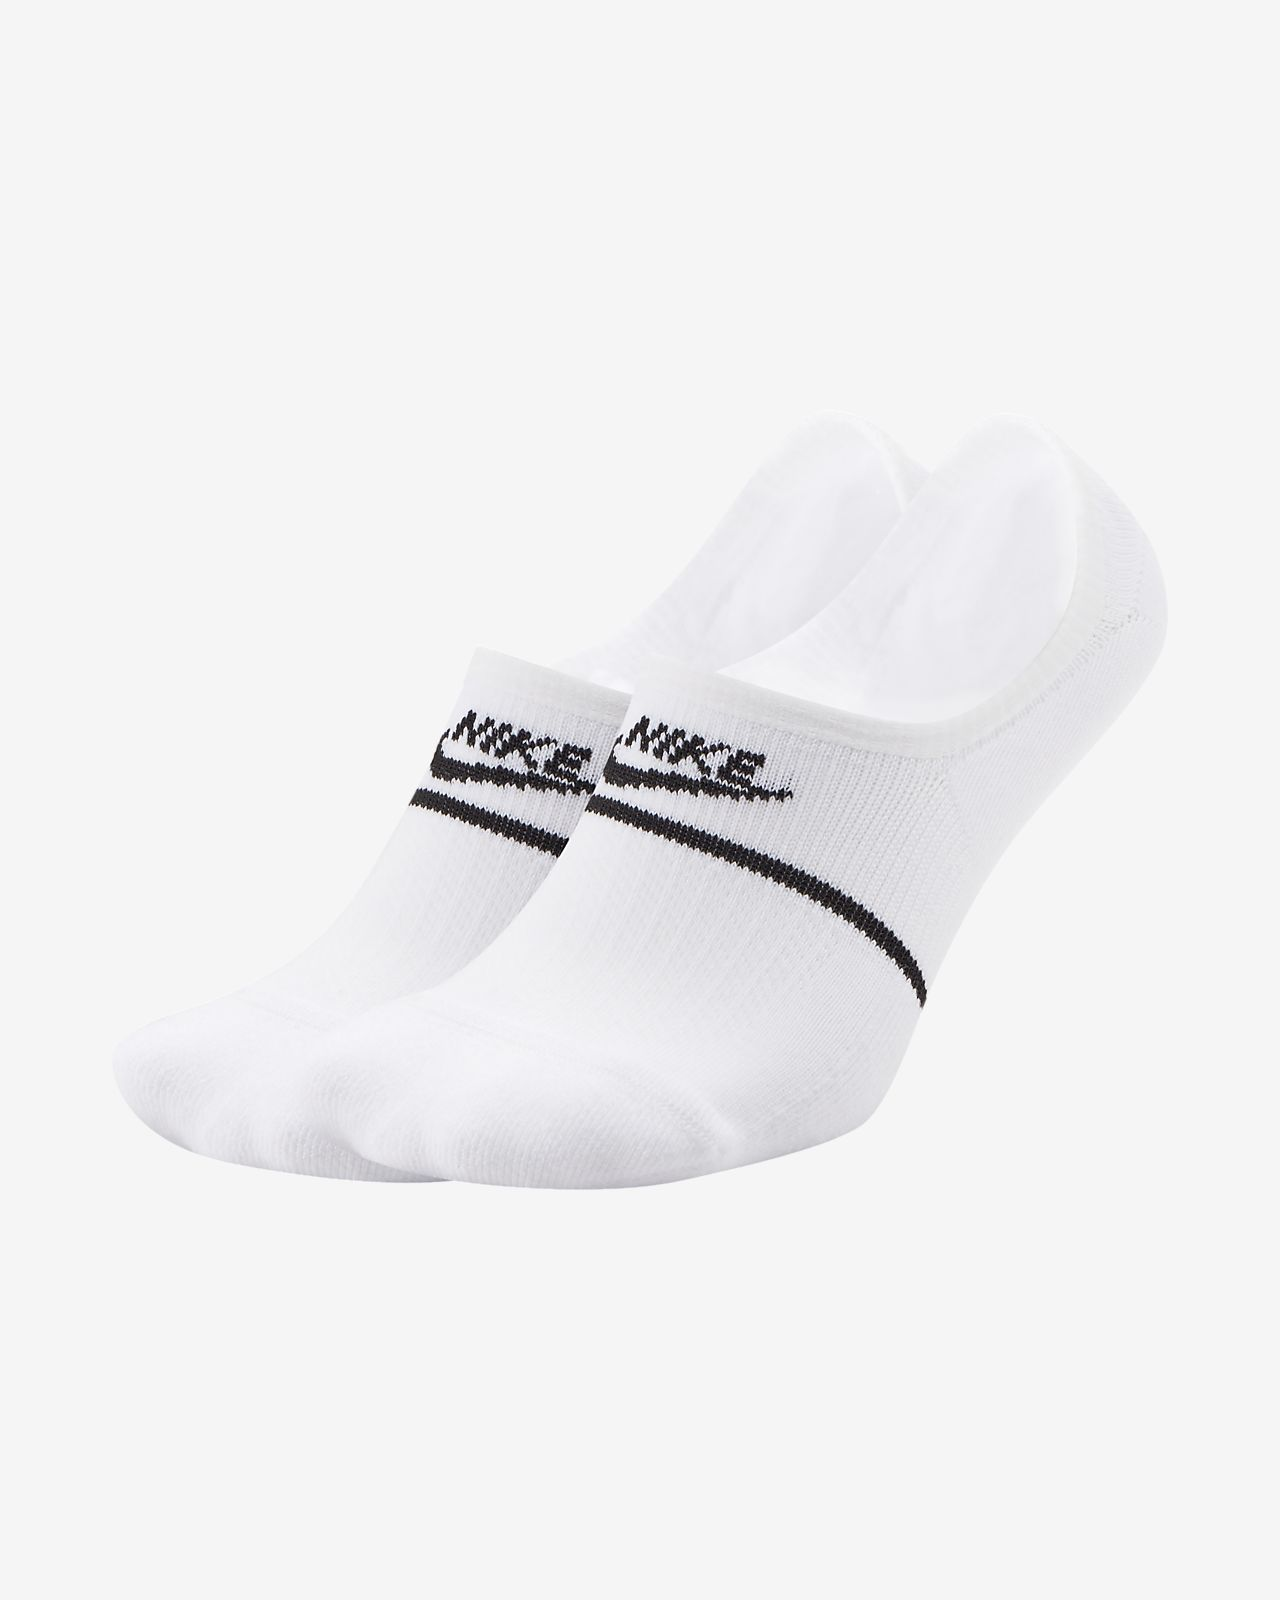 Chaussettes invisibles Nike SNEAKR Sox Essential (2 paires)